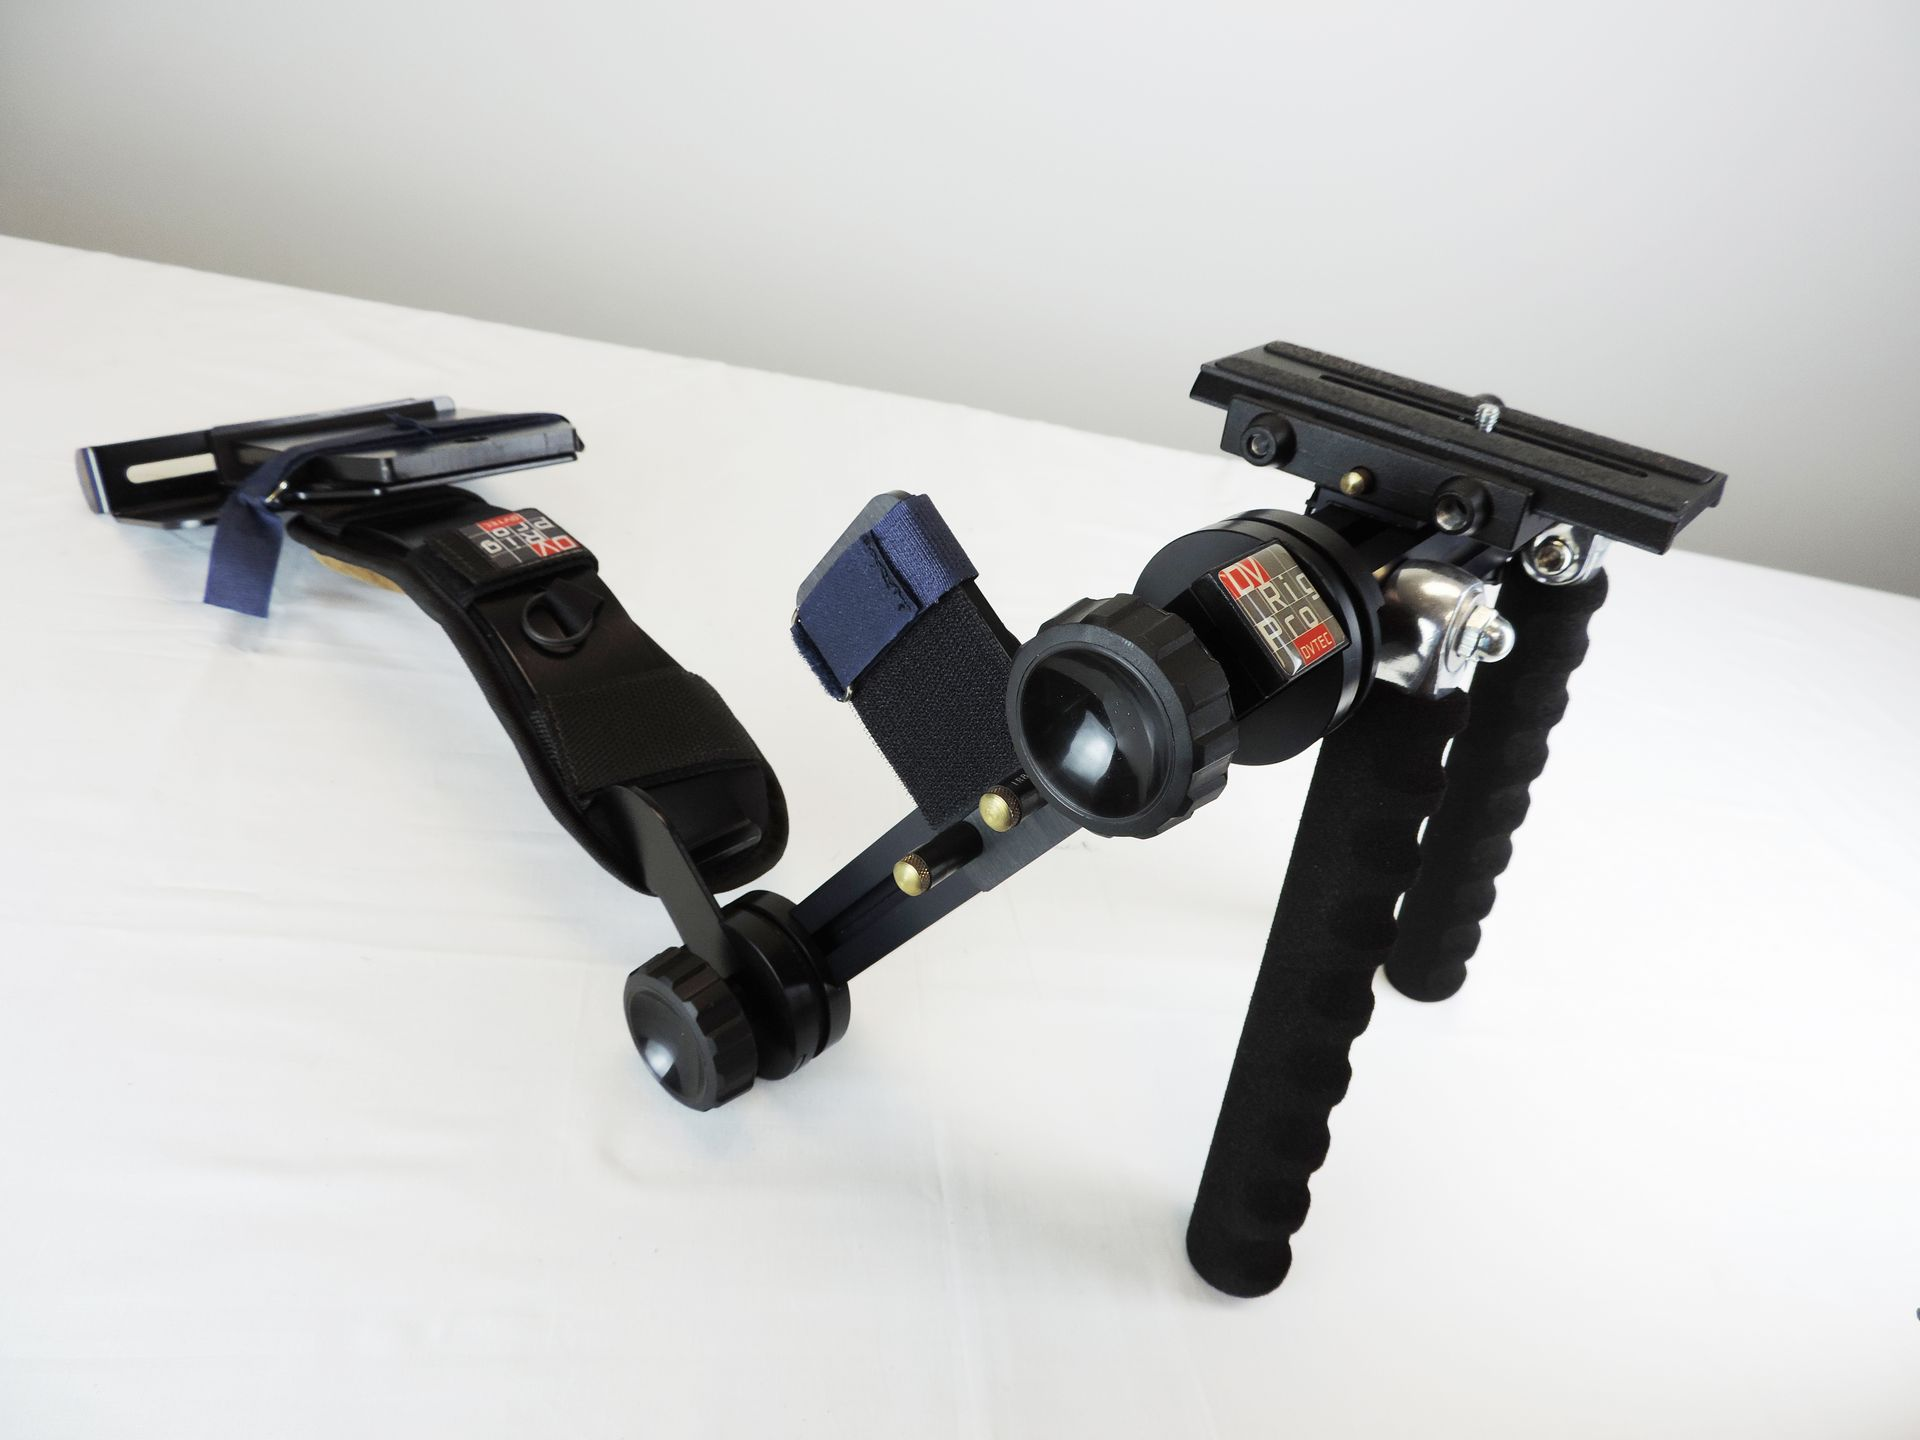 DVTEC DV Rig Pro SteadyCam for sale at Plasma Music